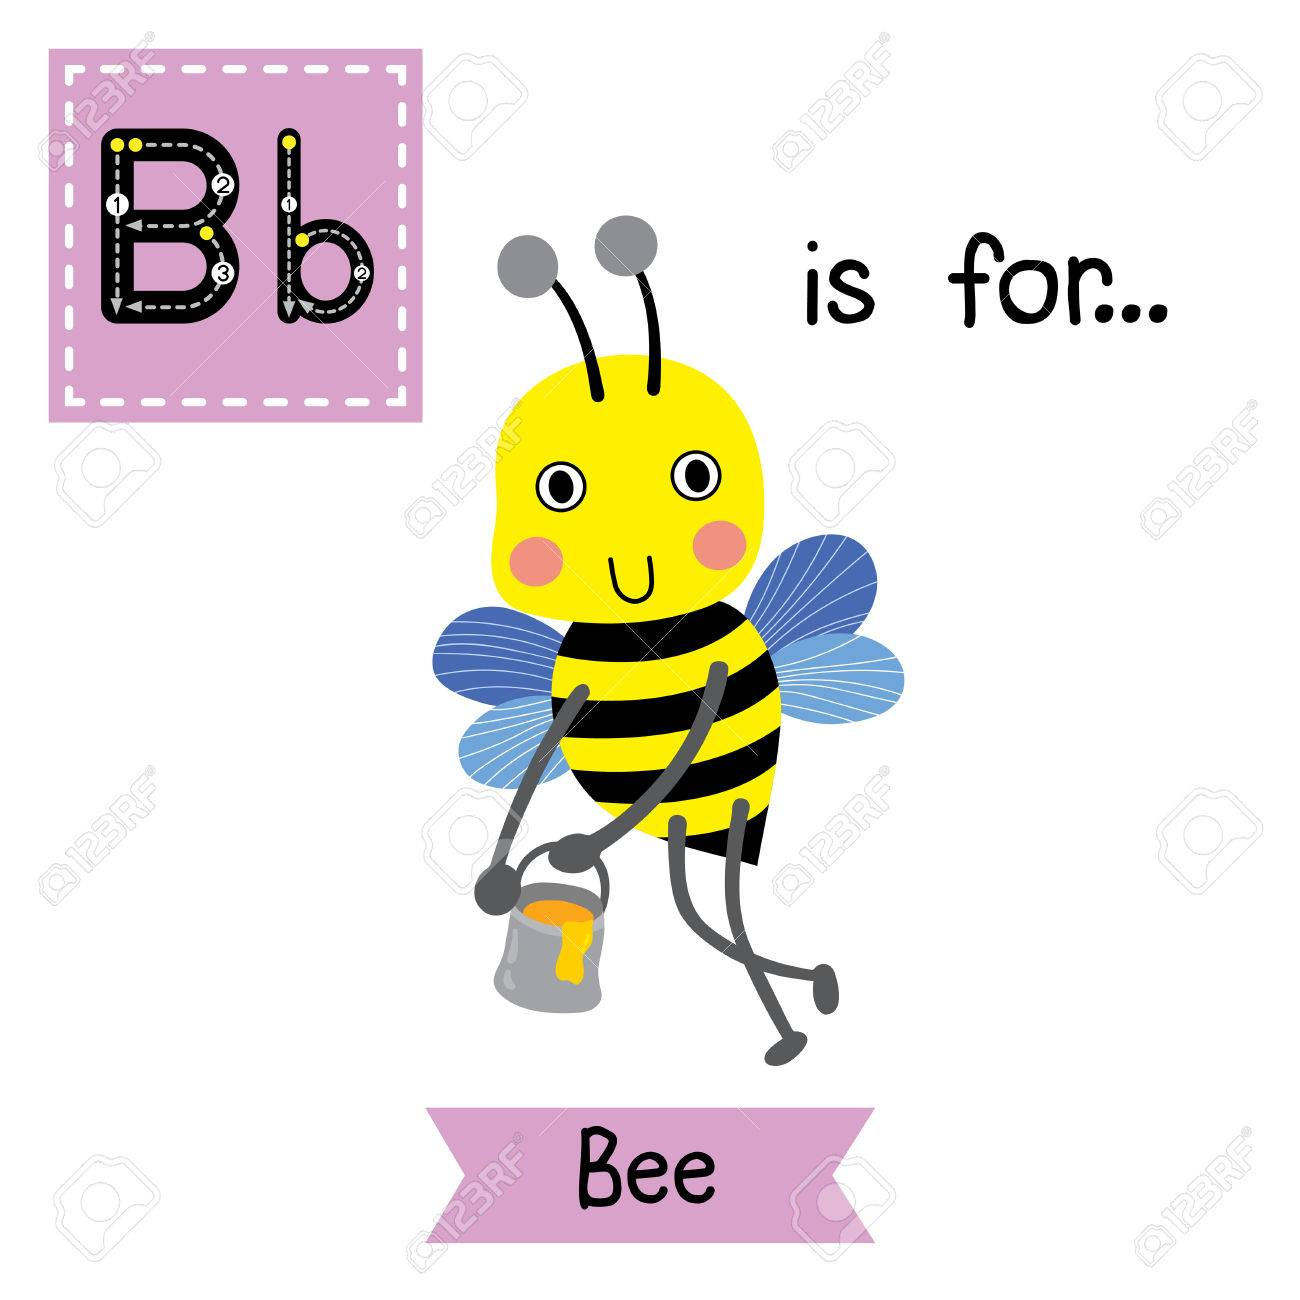 b letter tracing happy big bee flying around with a brimful jar of delicious honey